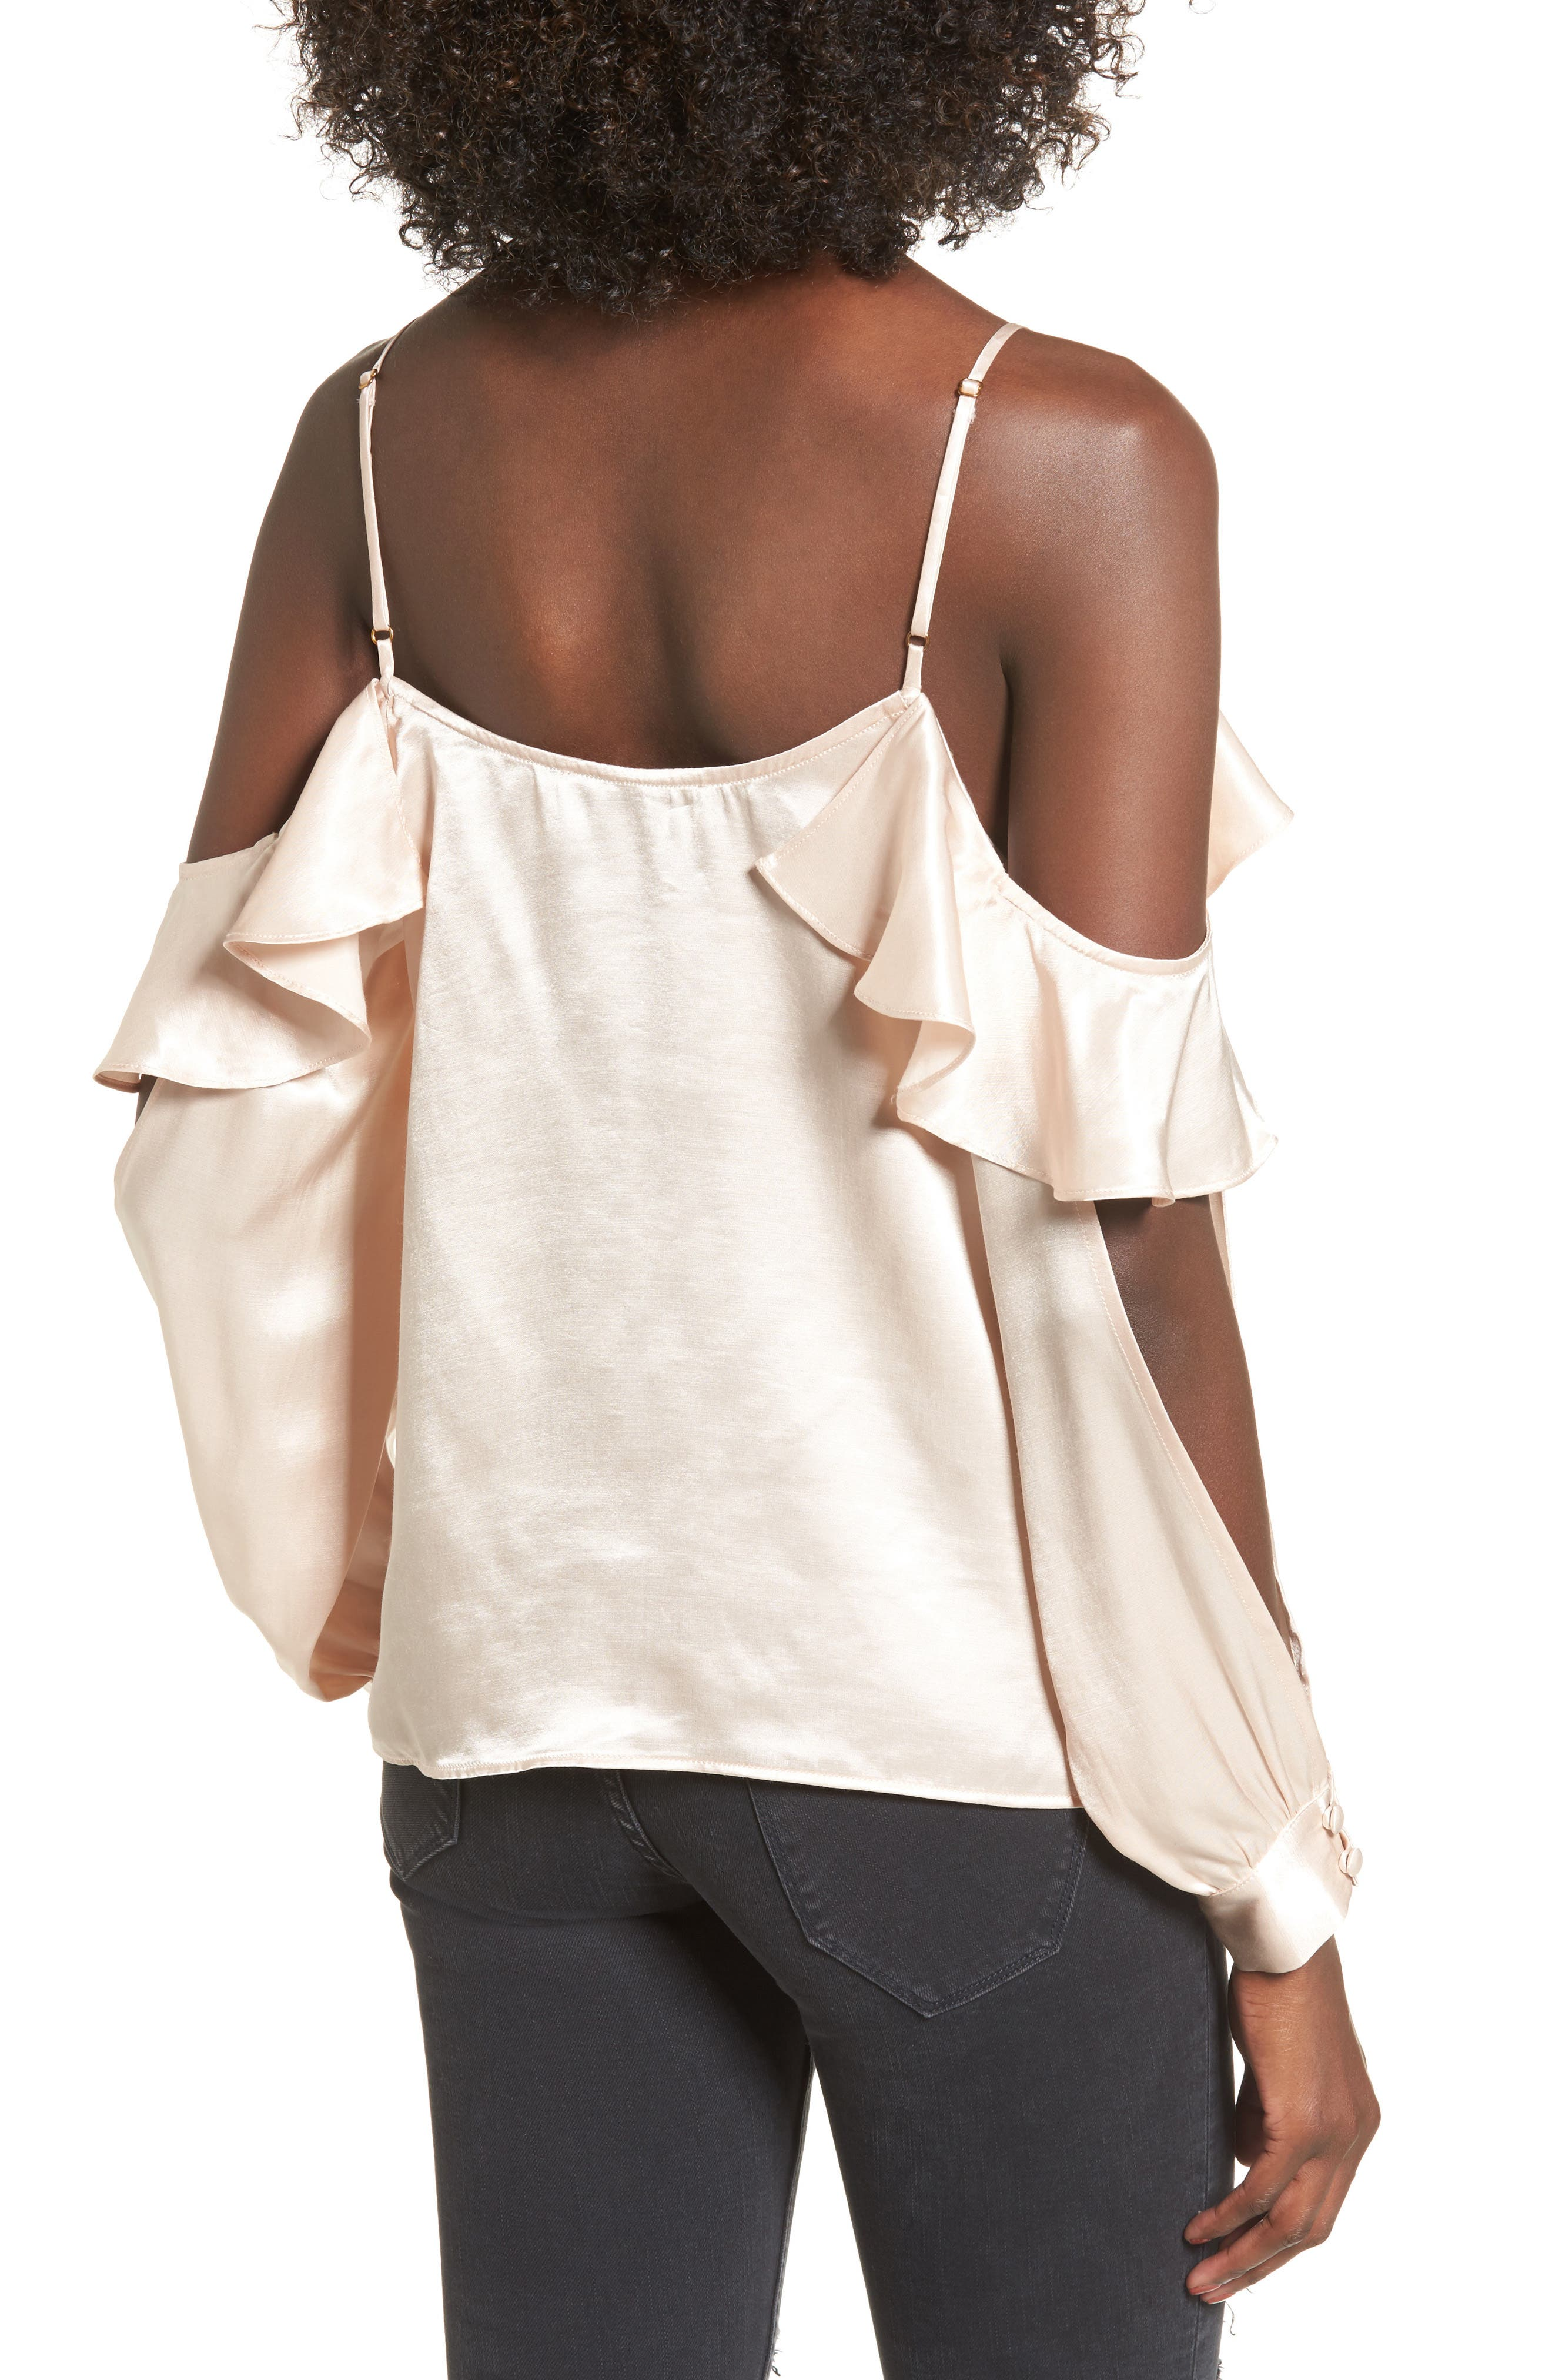 L'Academie The Open Sleeve Blouse,                             Alternate thumbnail 2, color,                             Champagne